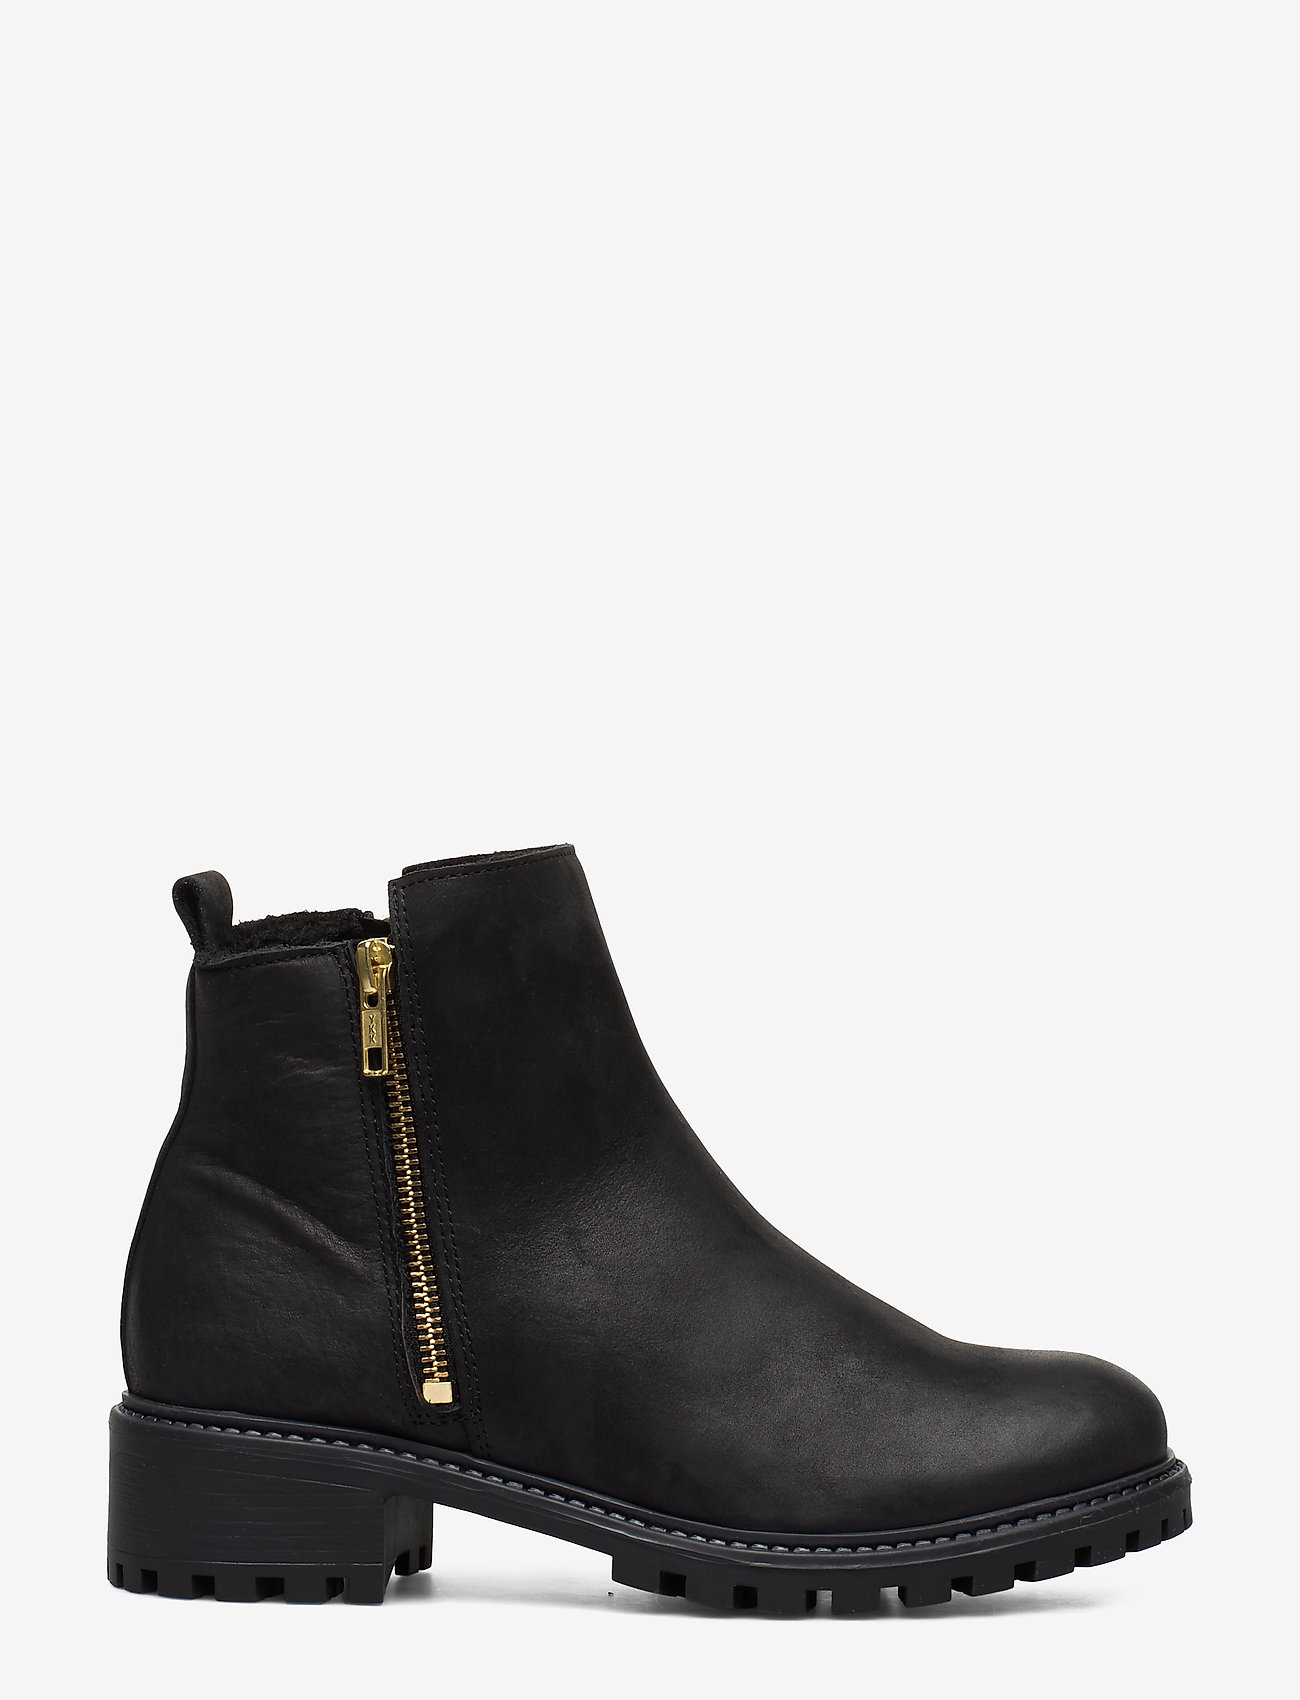 Sofie Schnoor - Boot - flat ankle boots - black - 1